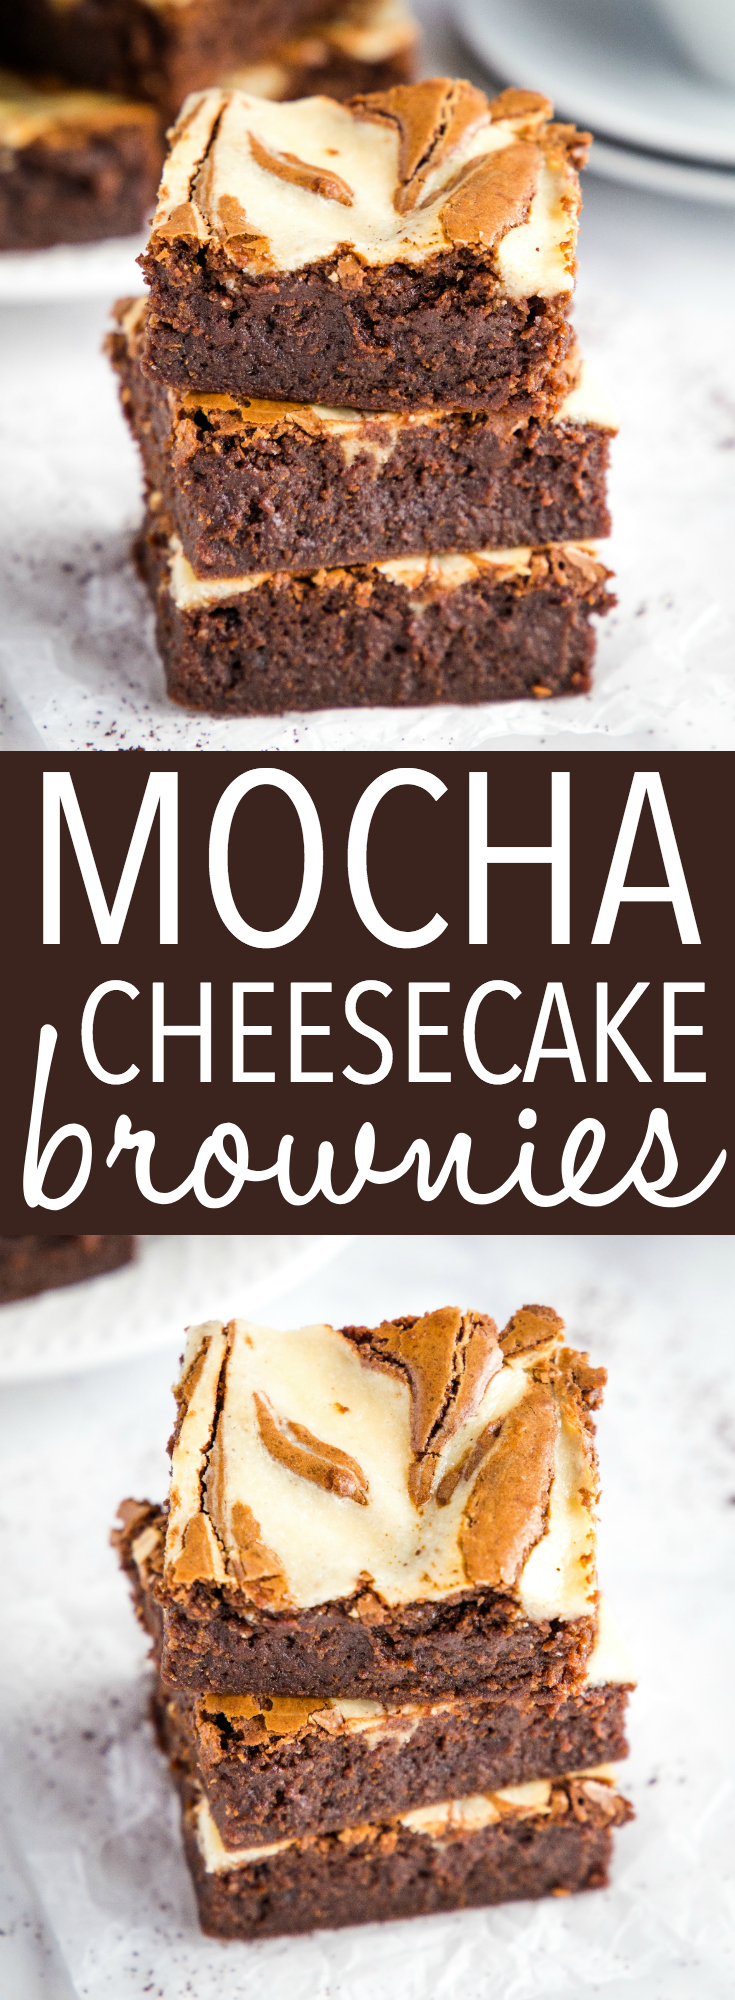 These Mocha Cheesecake Brownies are every chocolate and coffee lover's dream dessert! They're easy to make and they're so moist and chewy! Recipe from thebusybaker.ca! #mocha #cheesecake #brownies #dessert #chocolate #coffee #homemade #recipe #foodblog #cocoa via @busybakerblog